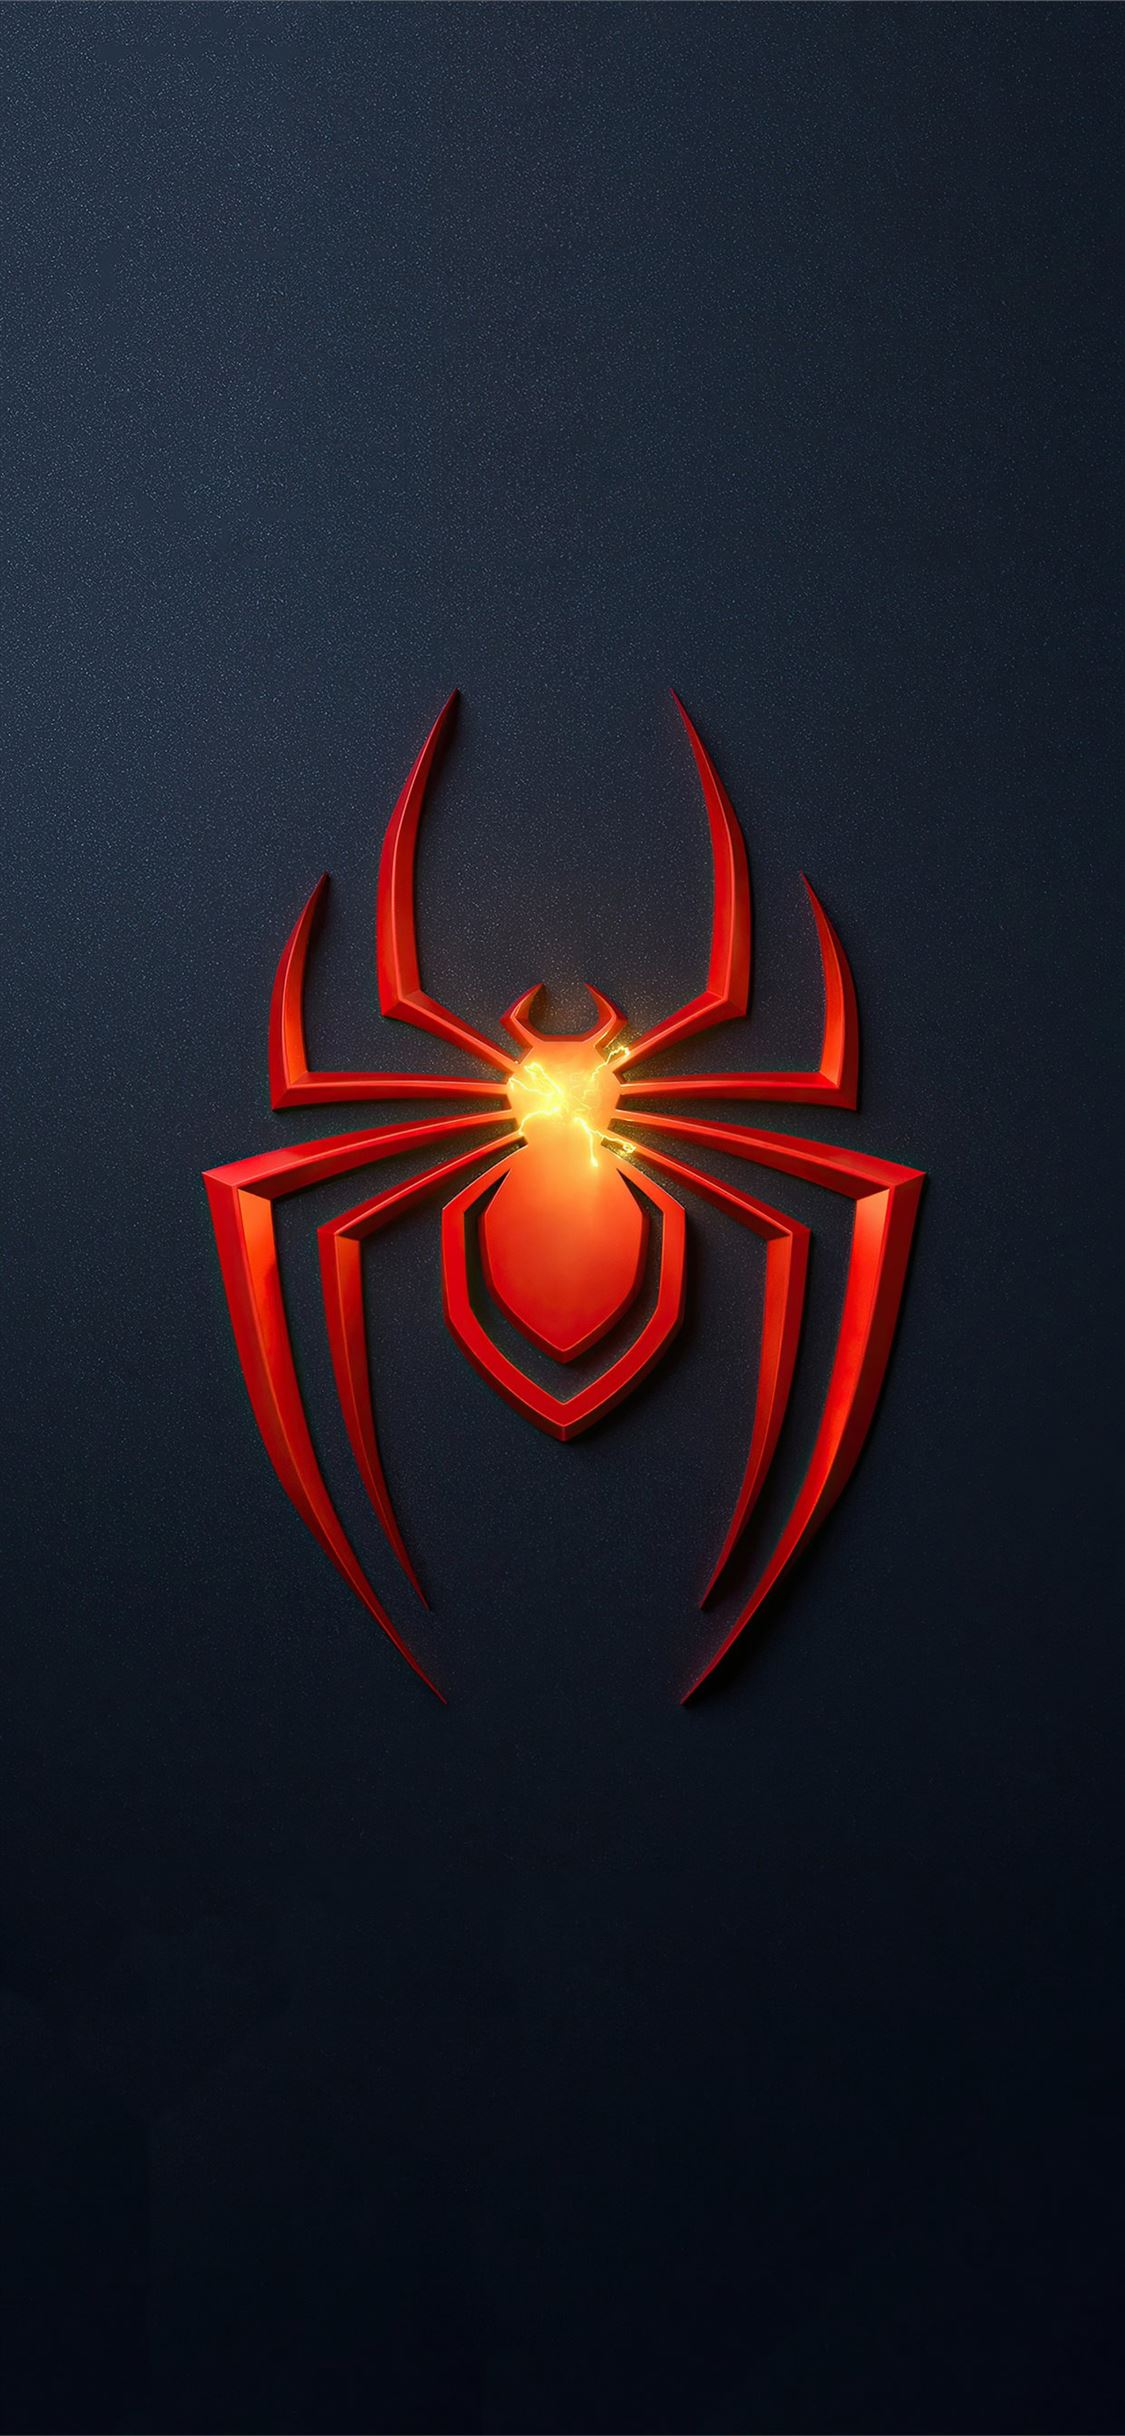 Spider Man Miles Morales Ps5 Game Logo 4k Iphone X Wallpapers Free Download